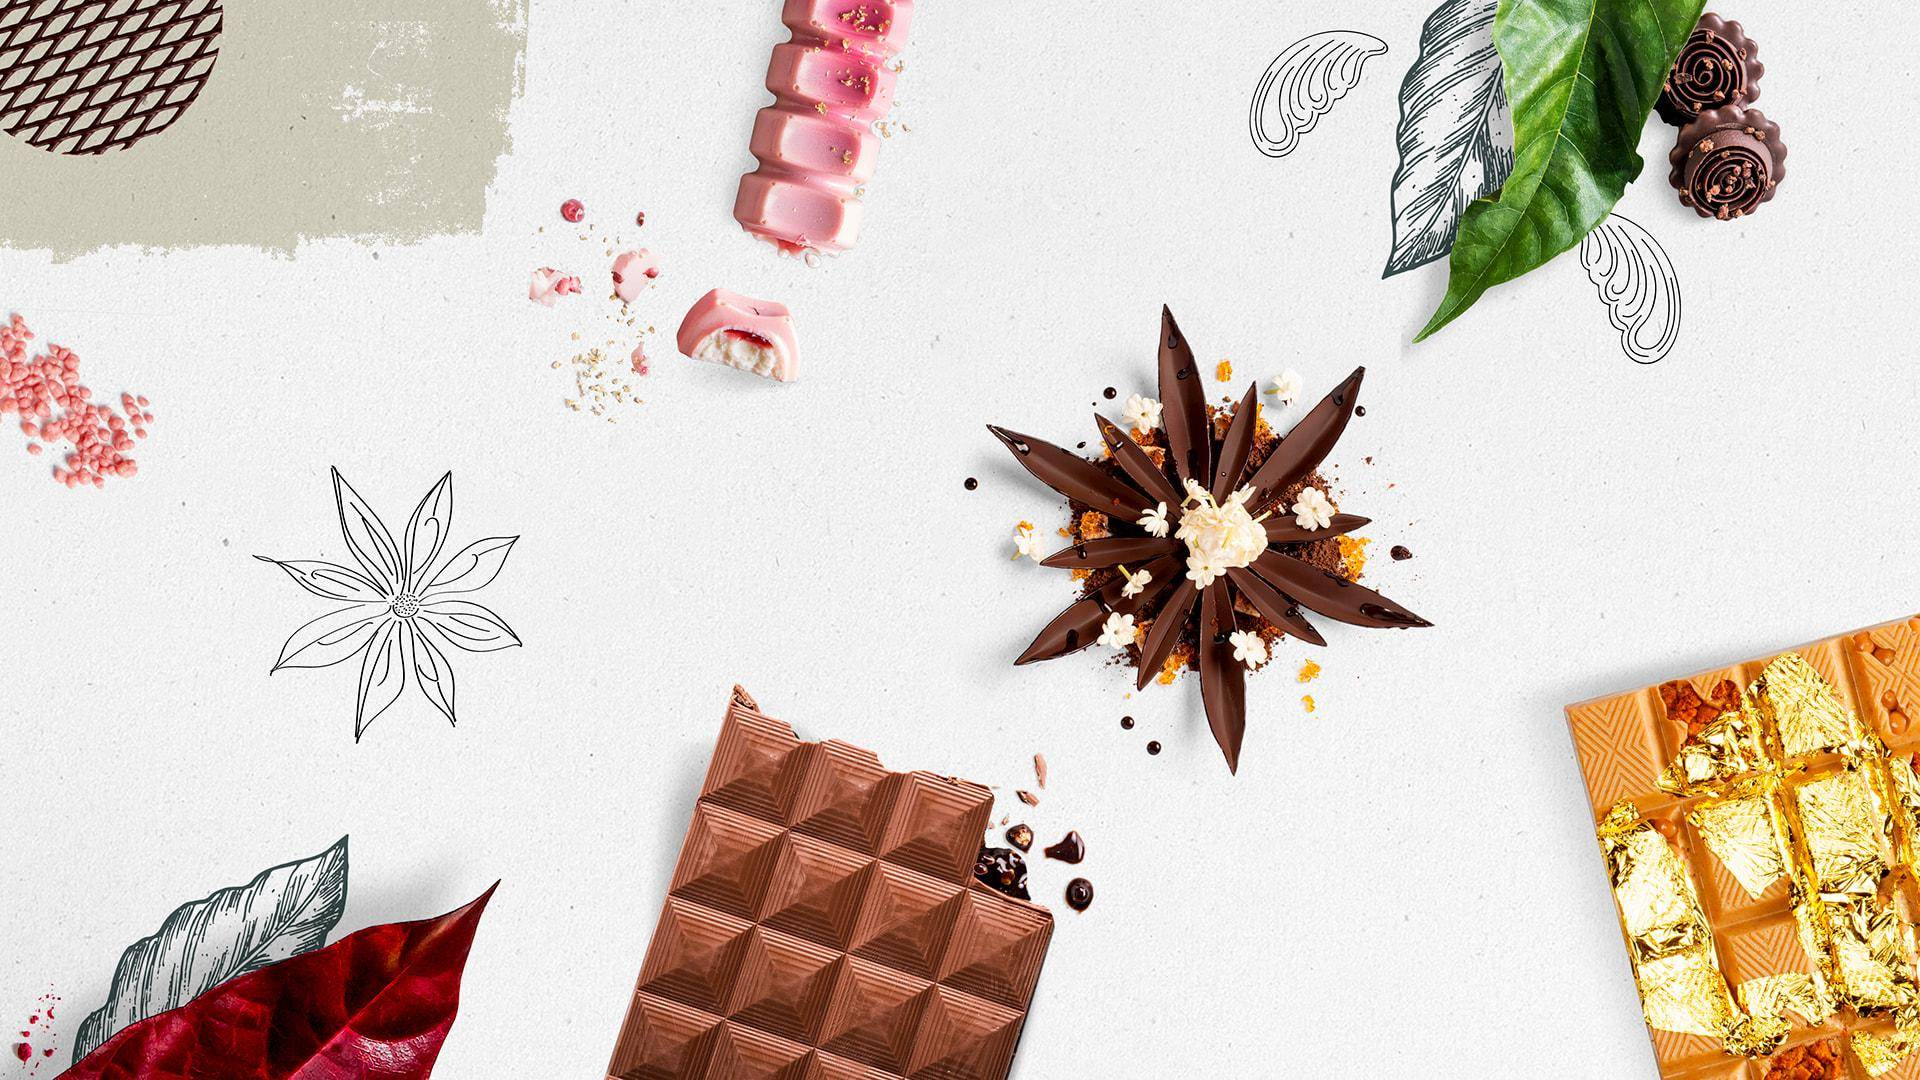 Barry Callebaut Full-Year 2019/20 results